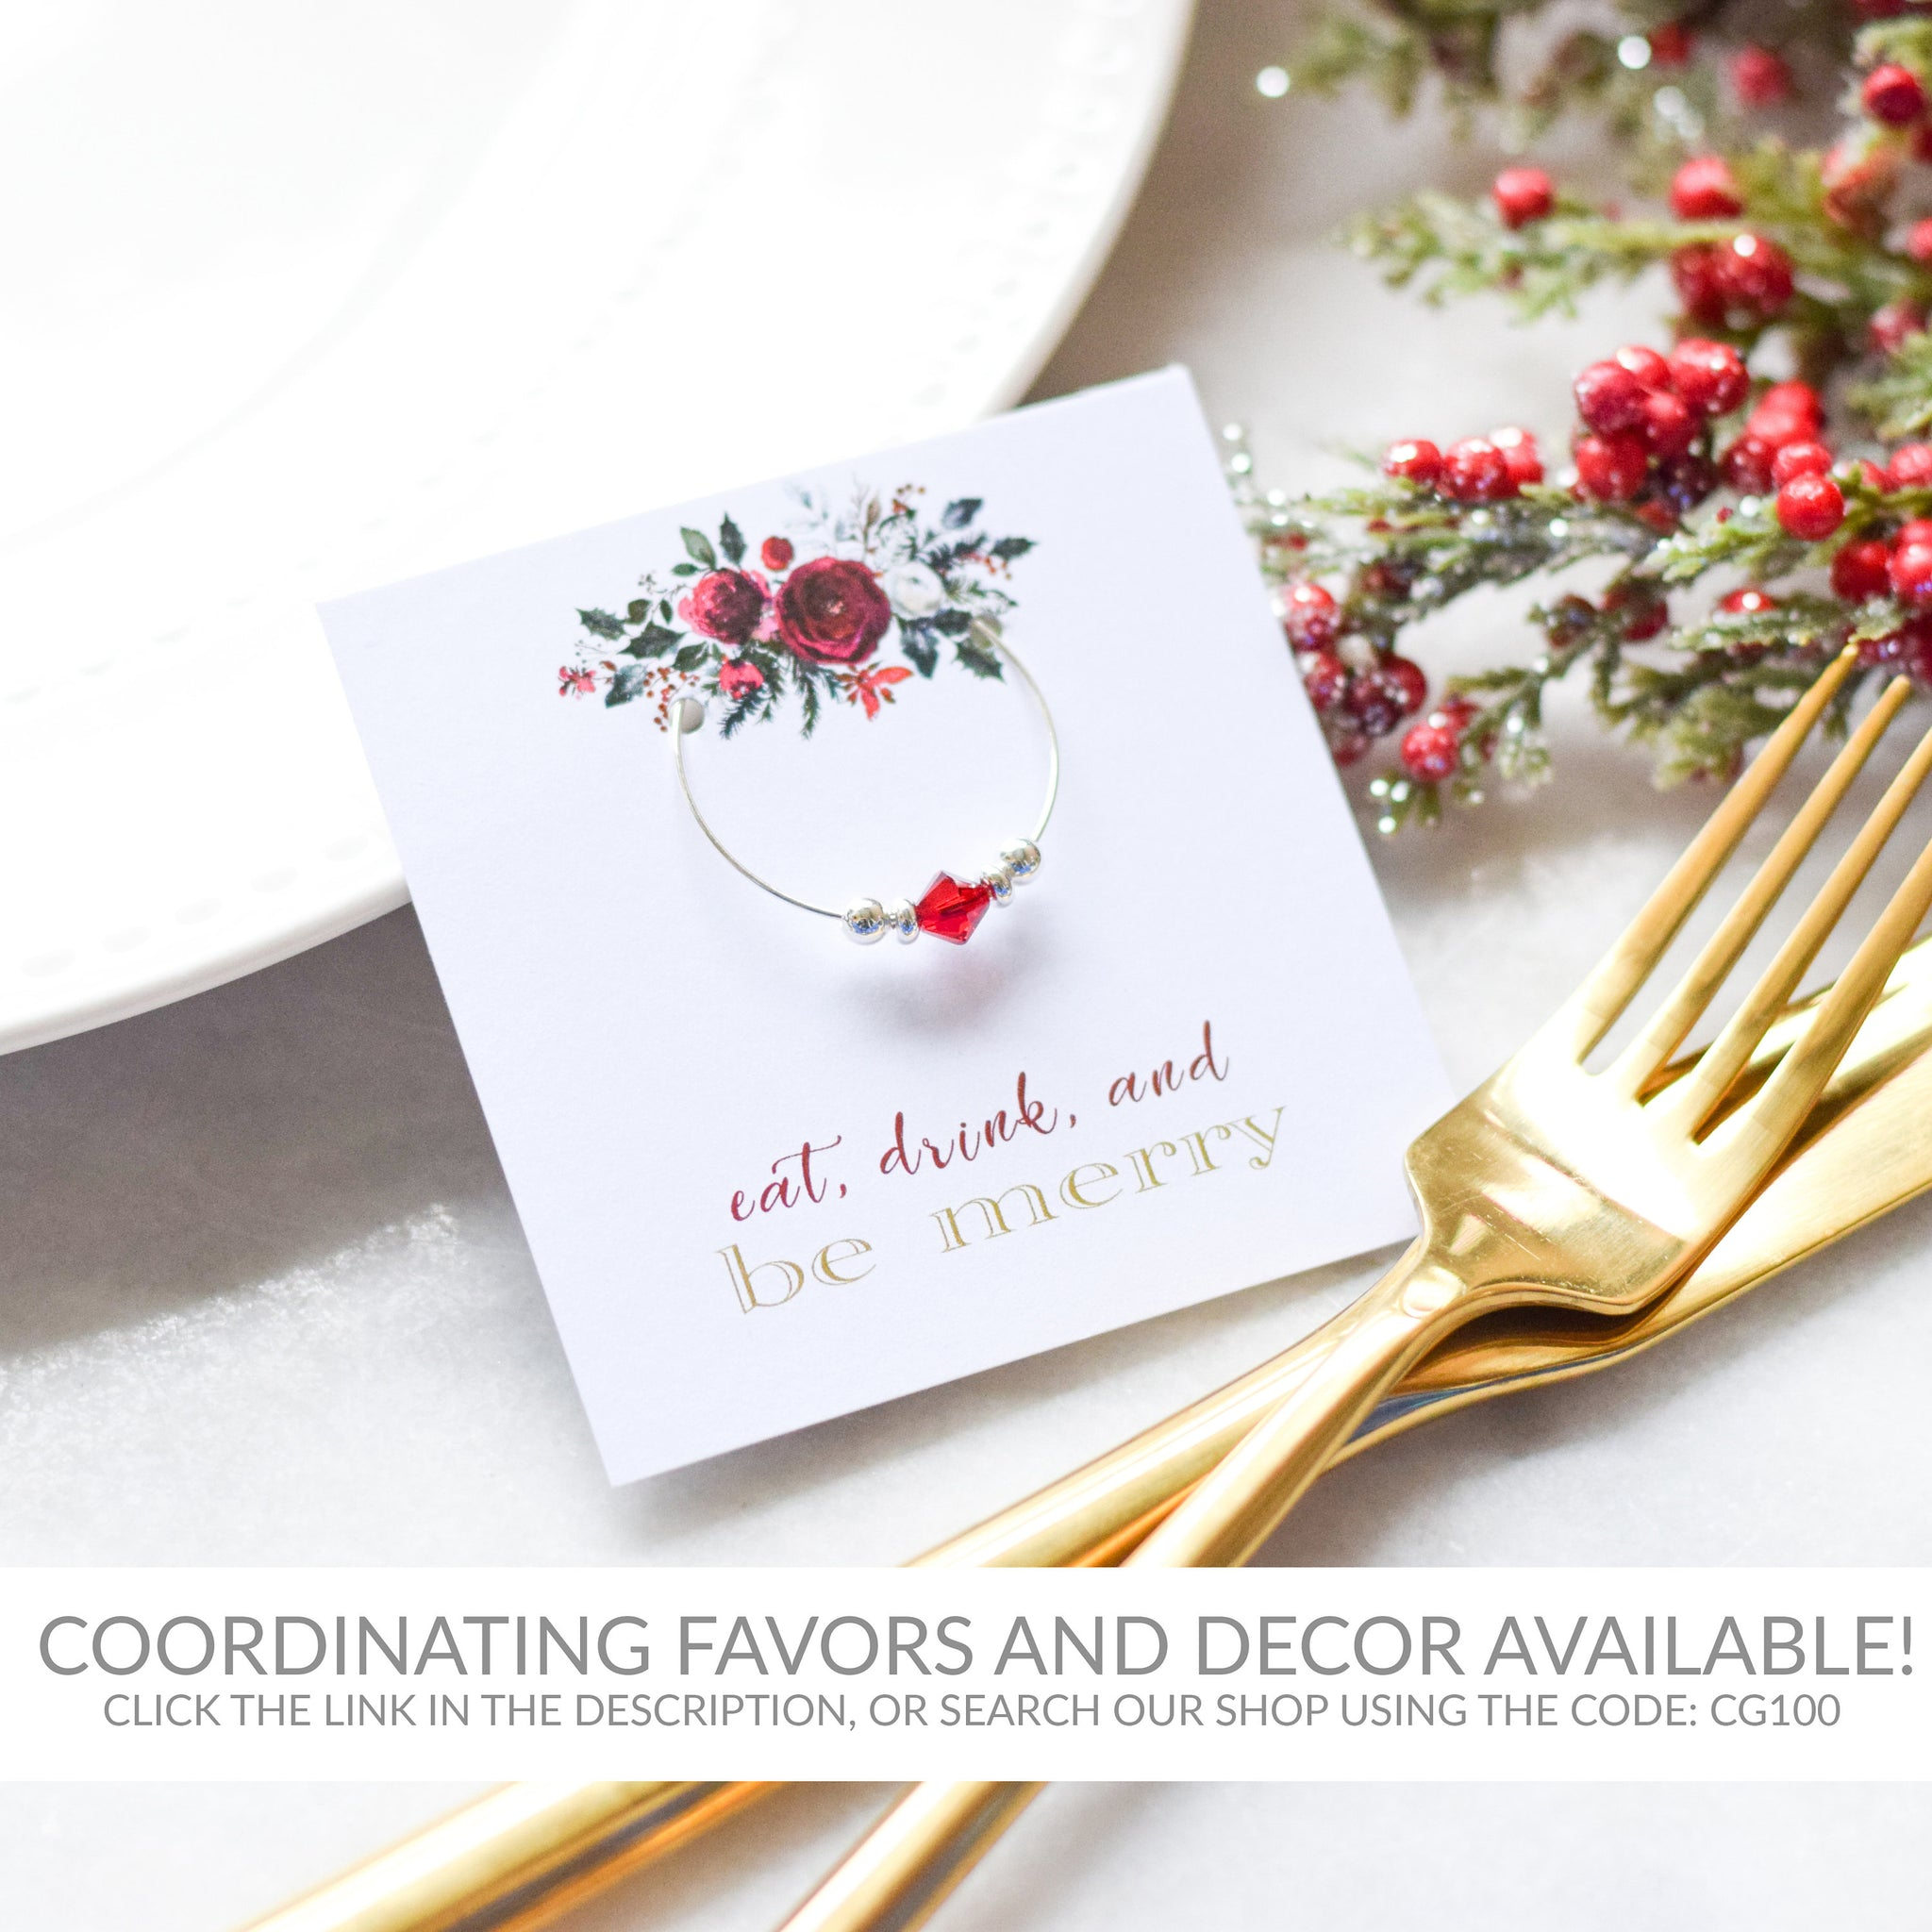 Christmas Party Favors Sign Printable, Holiday Party Printable Decorations, Christmas Bridal Shower Favor Sign, INSTANT DOWNLOAD - CG100 - @PlumPolkaDot